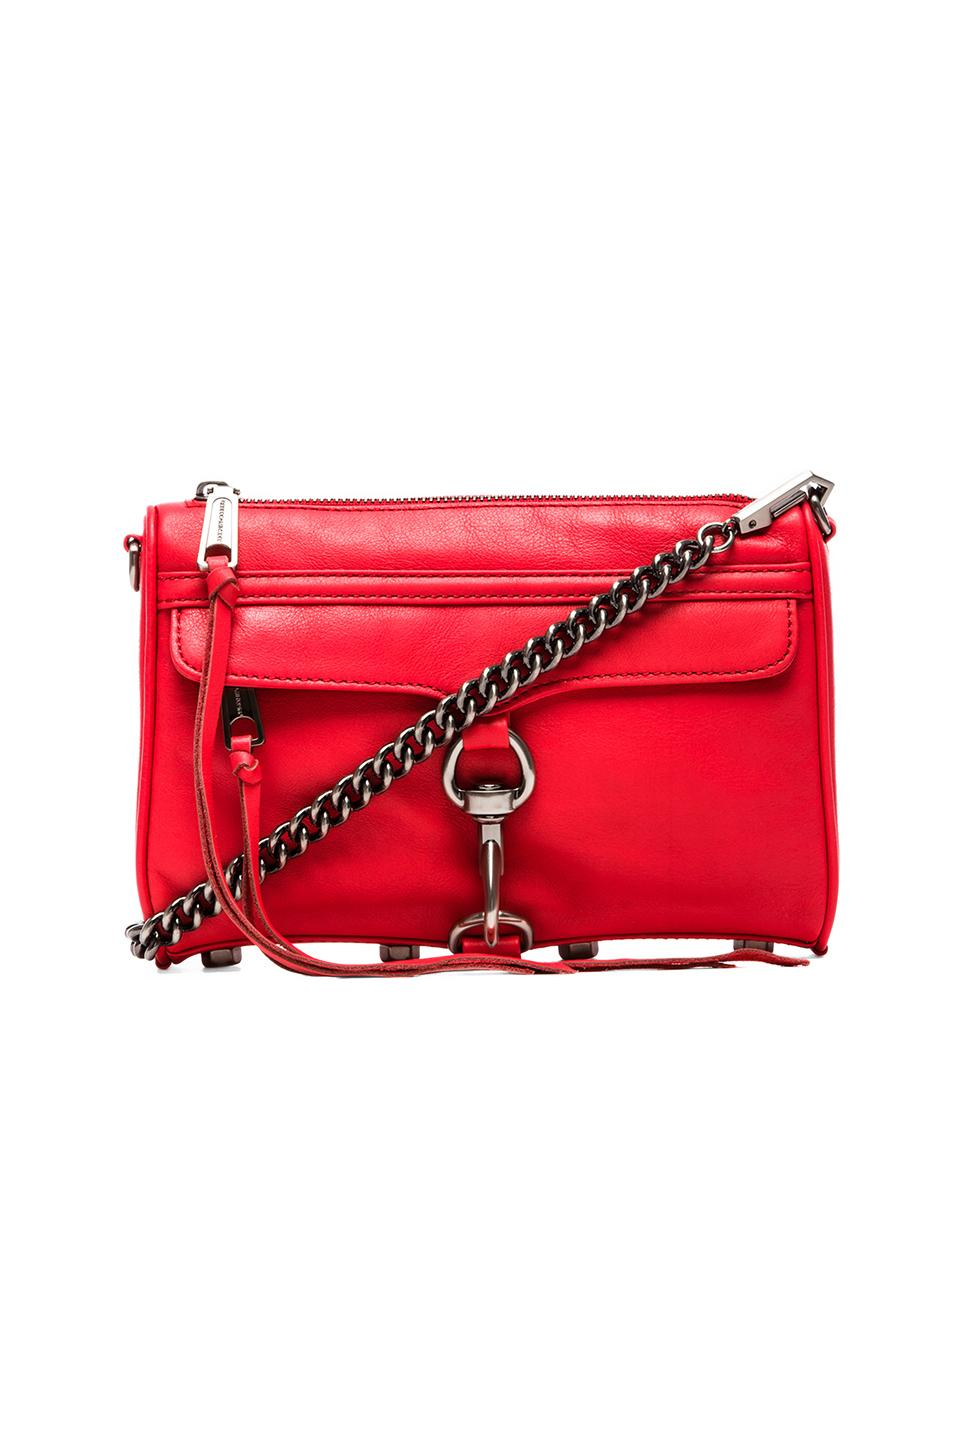 Rebecca Minkoff Mini MAC in Hot Red